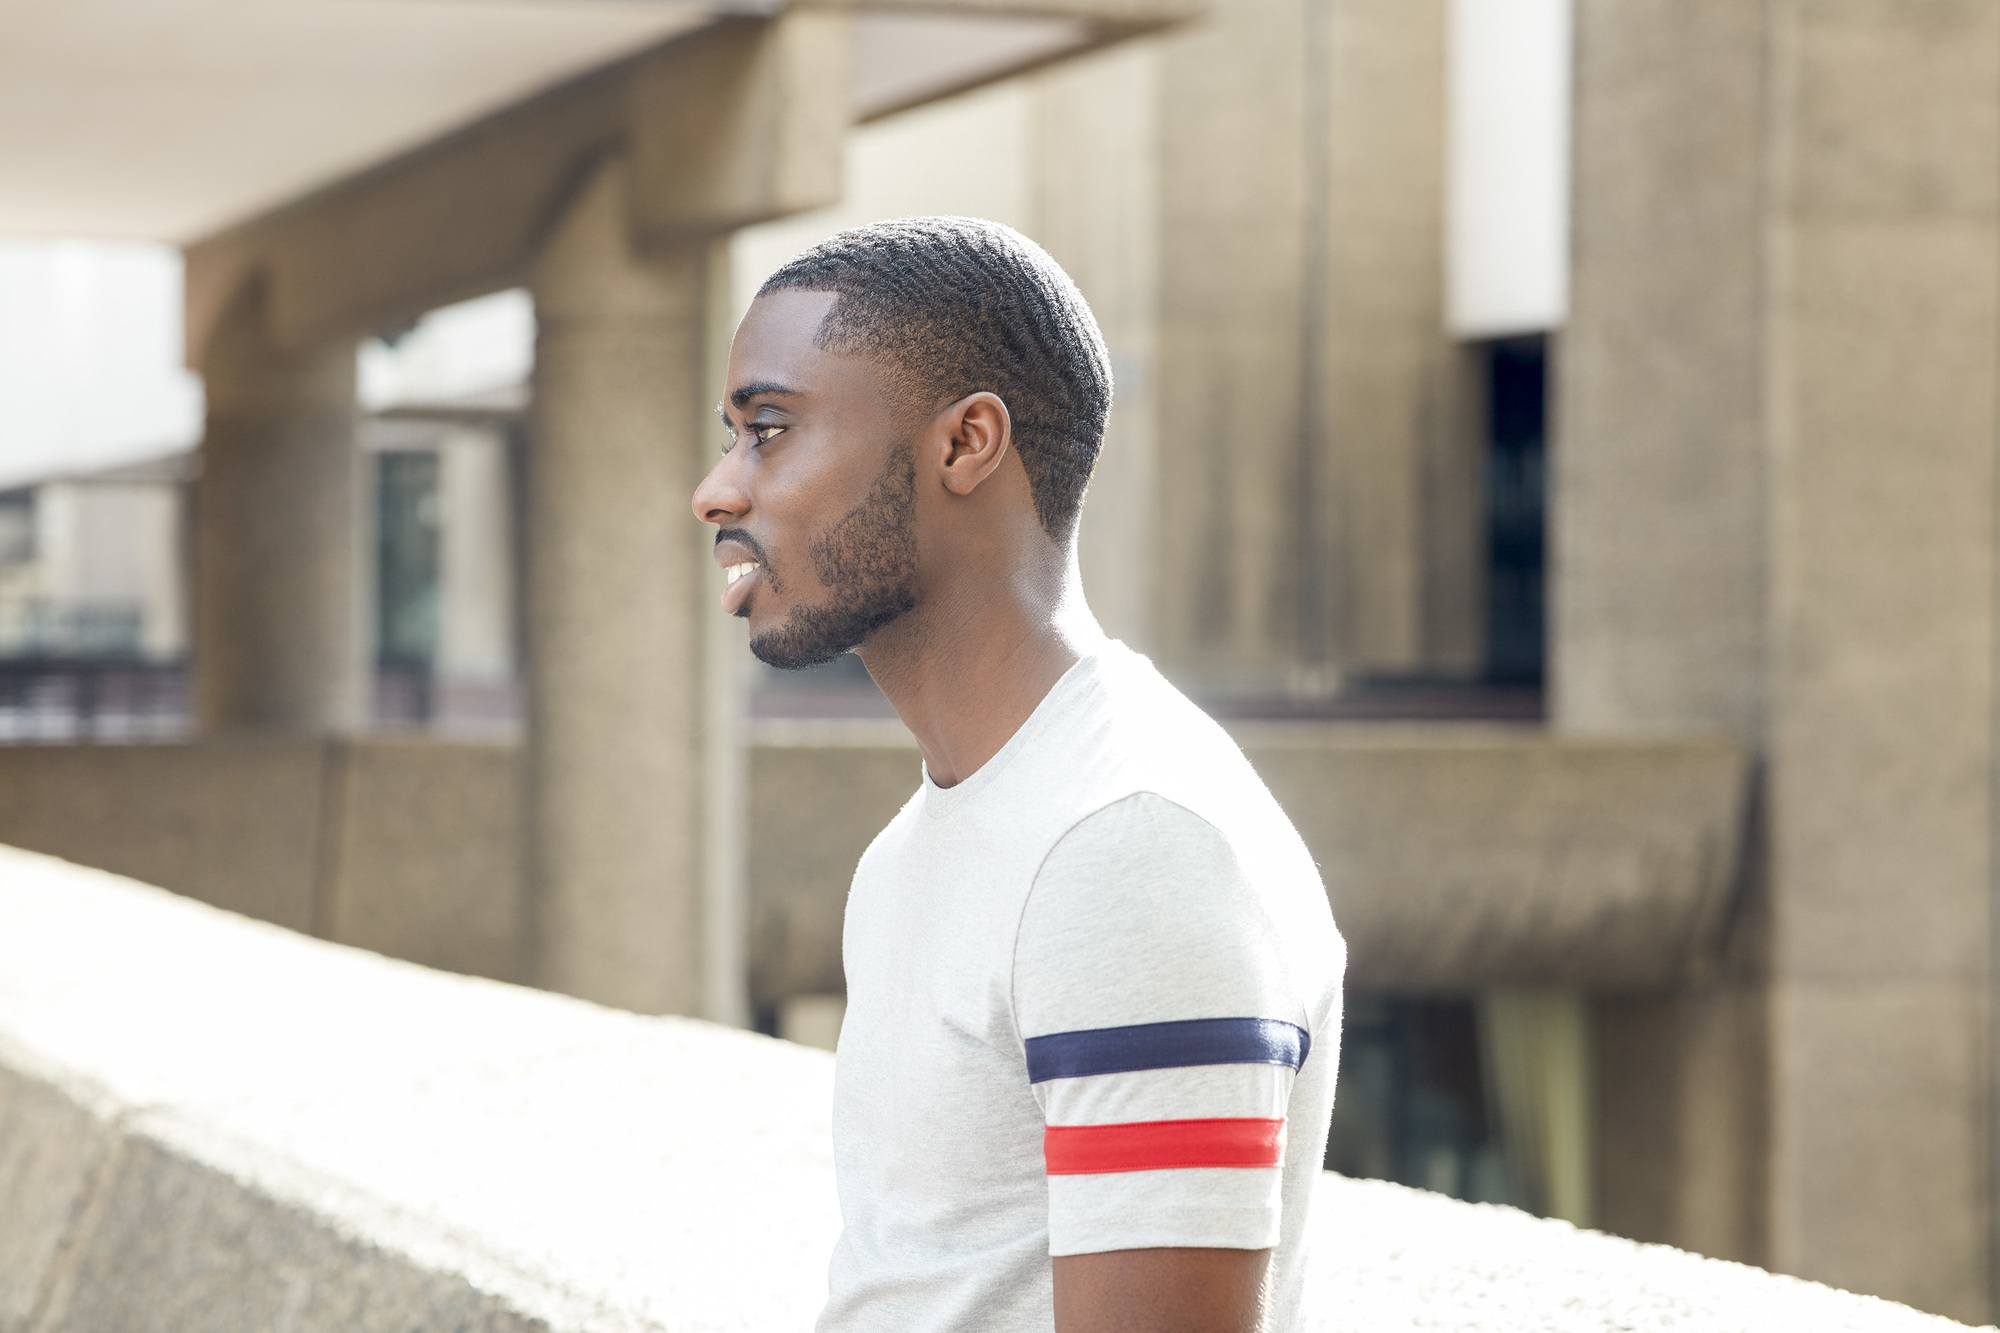 Hairstyles for men with thin hair: Outdoor shot of a man with 360 waves, wearing a white tshirt with blue and red stripes on the arm